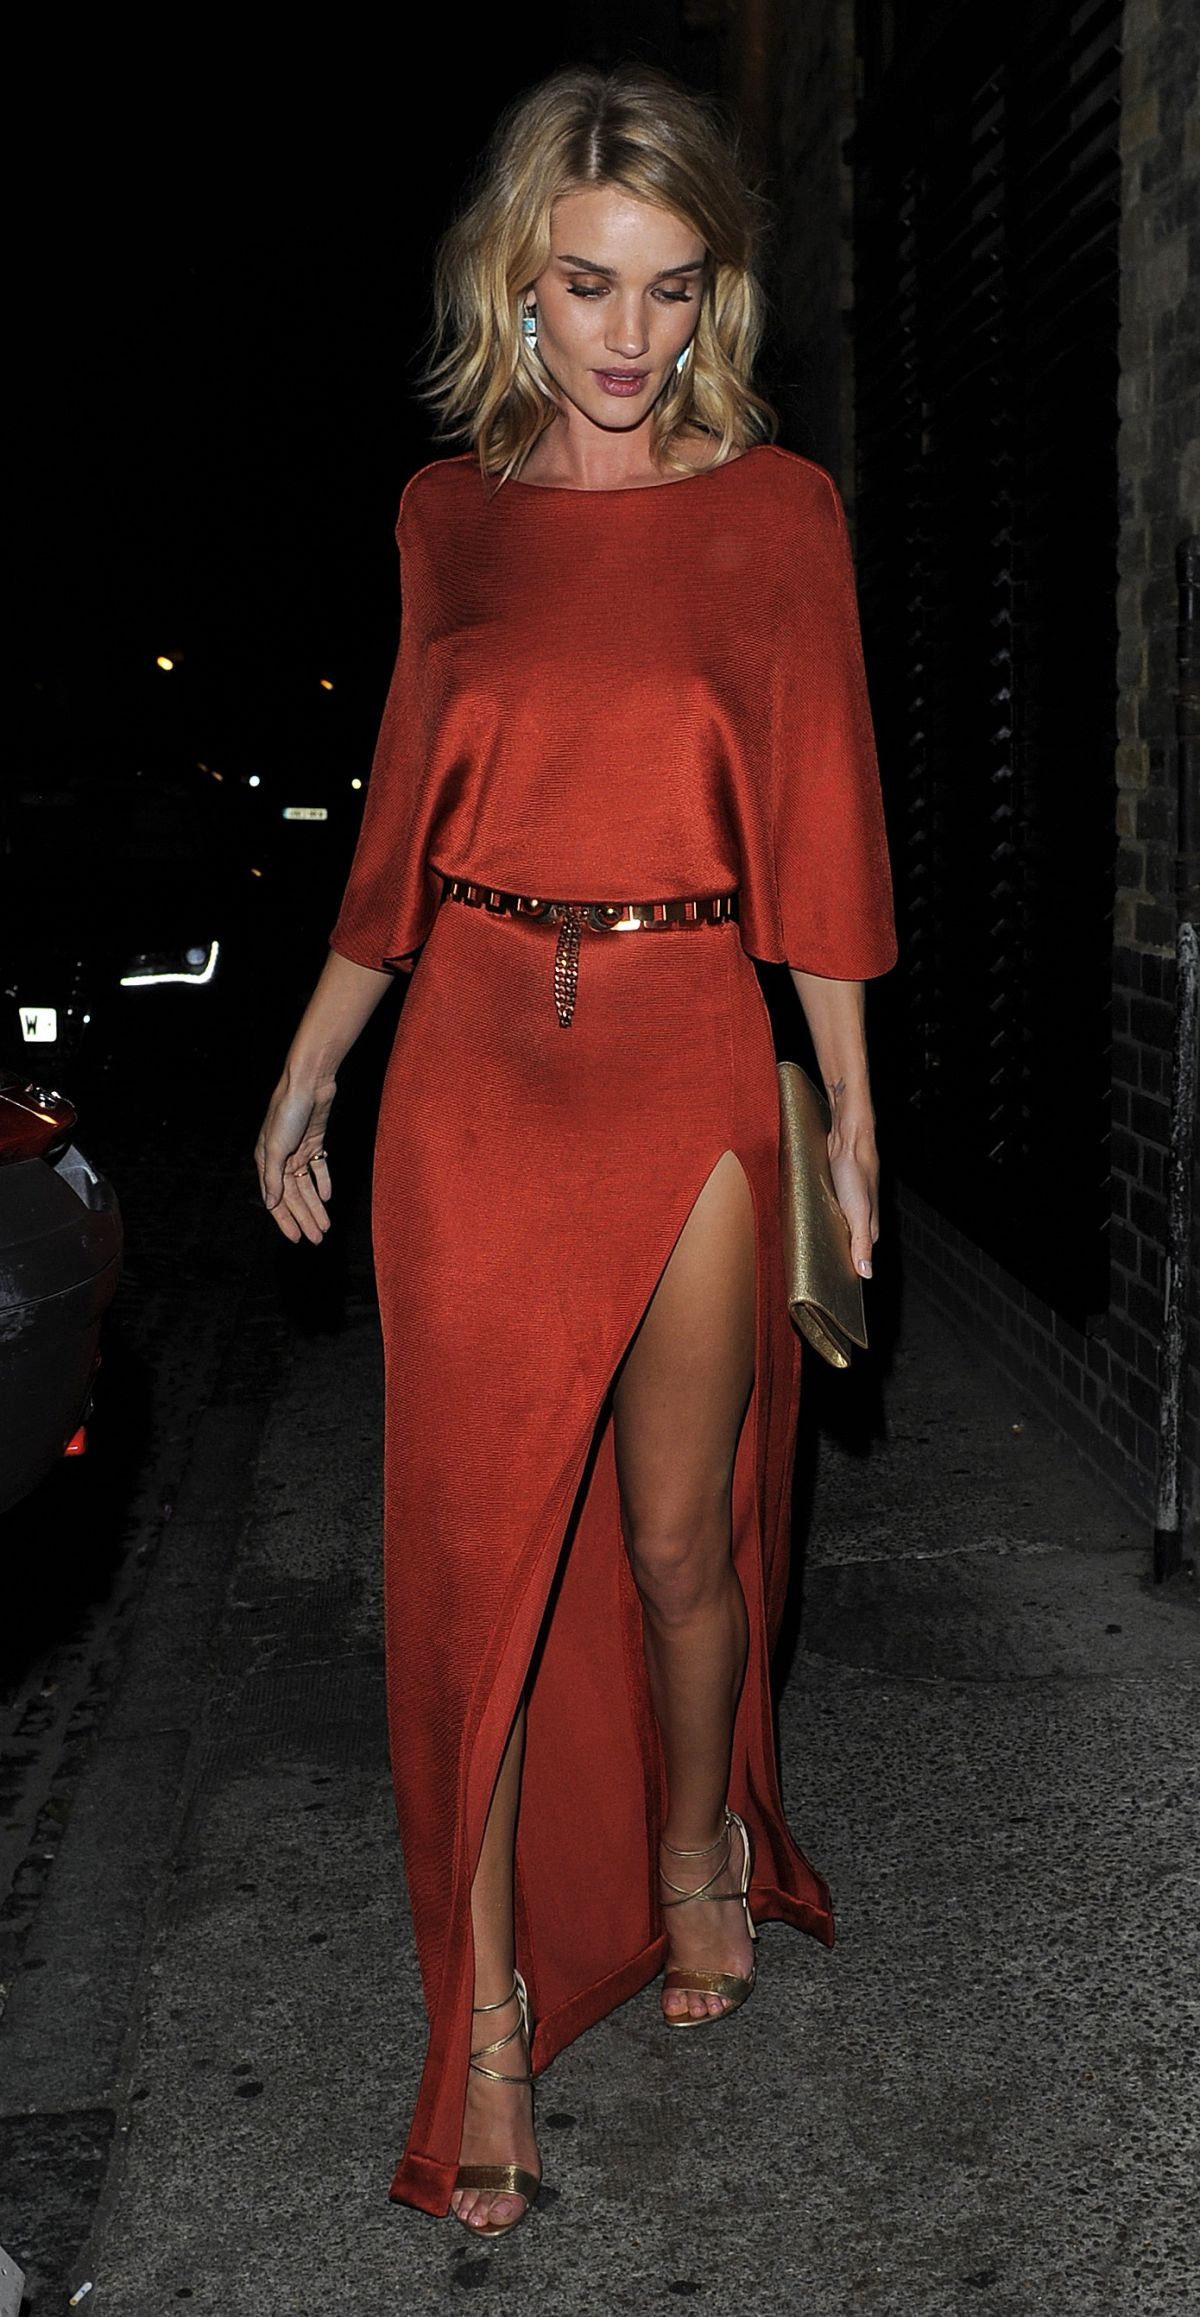 rosie-huntington-whiteley-arrives-at-chiltern-firehouse-in-london_1